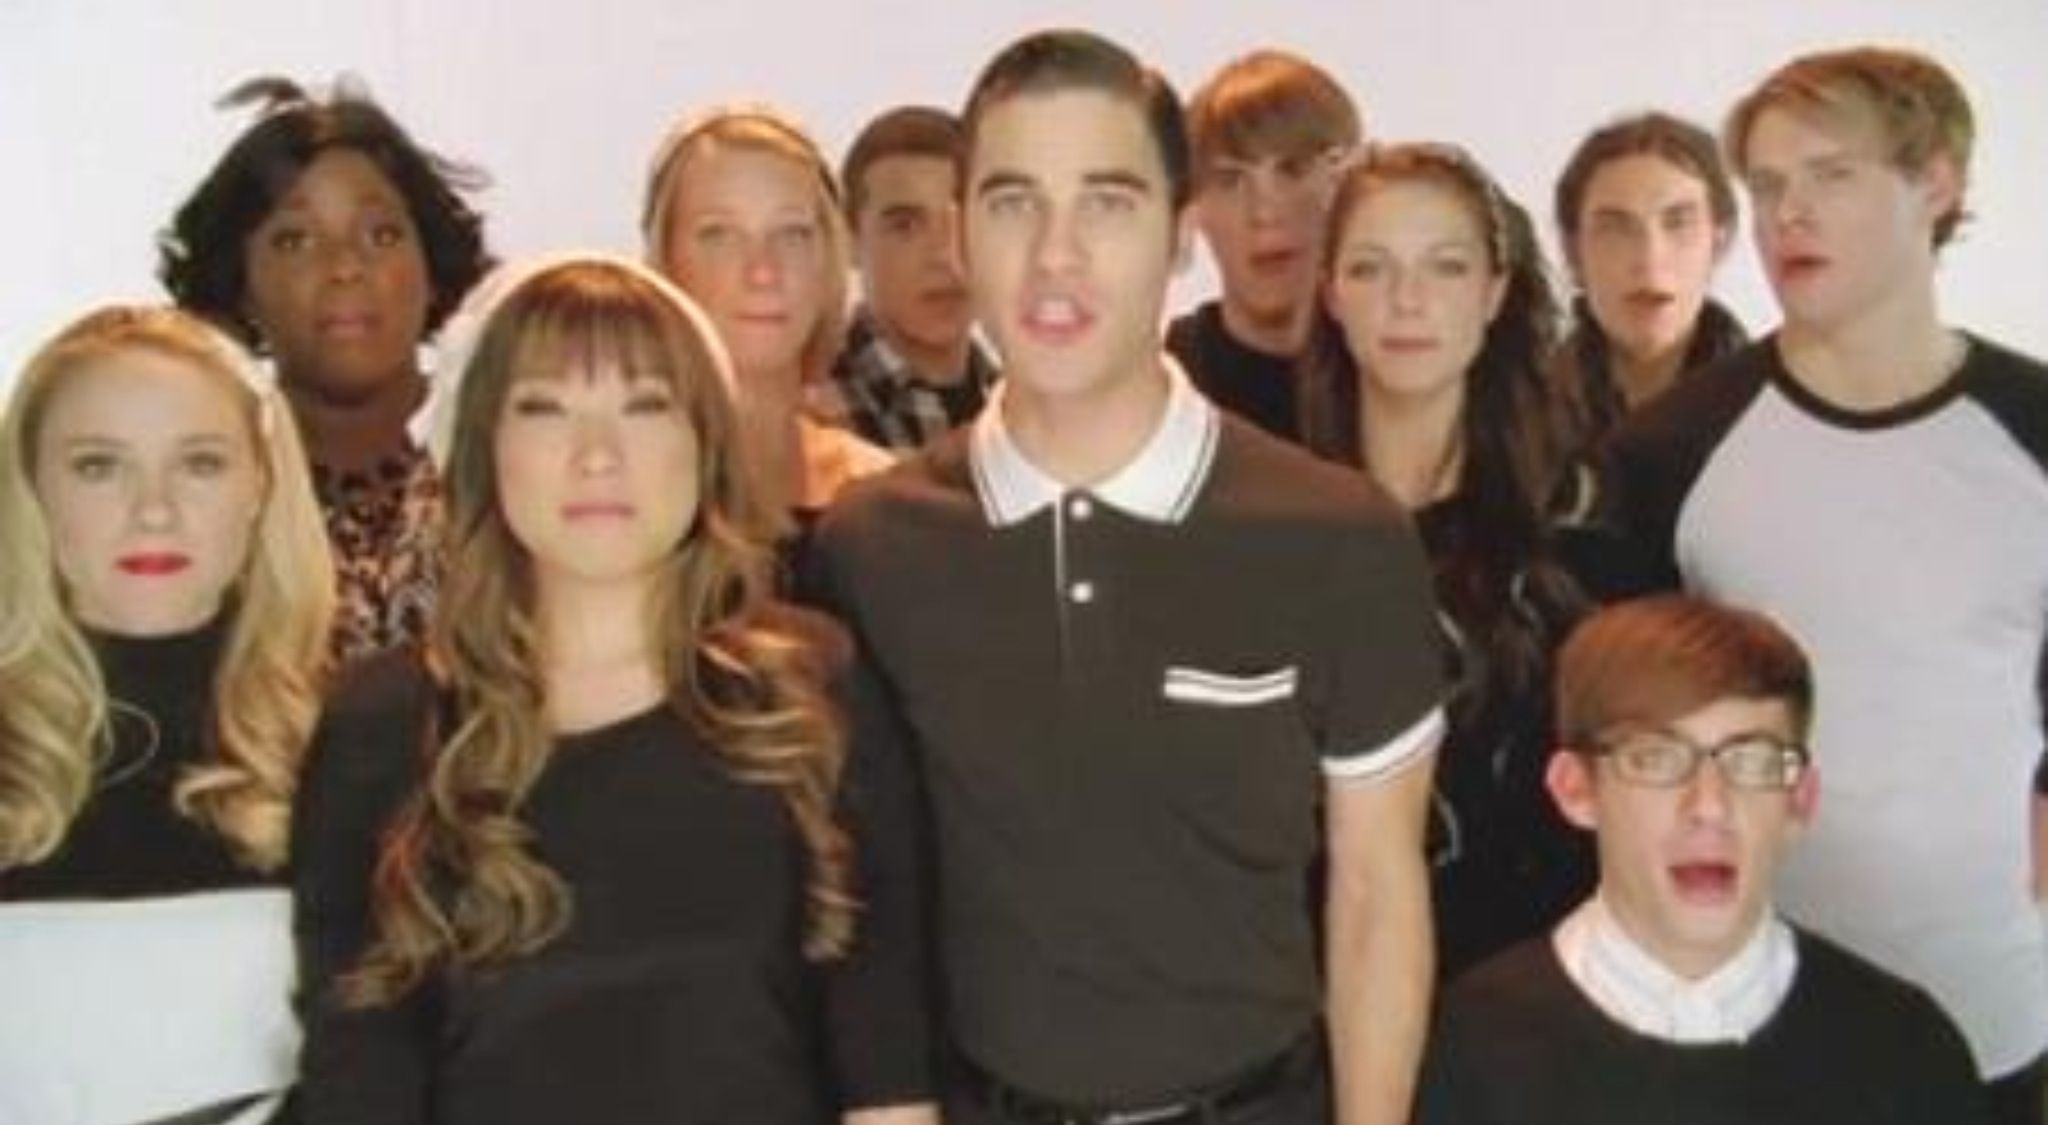 Glee Cast This Is The New Year Glee Glee Cast It Cast